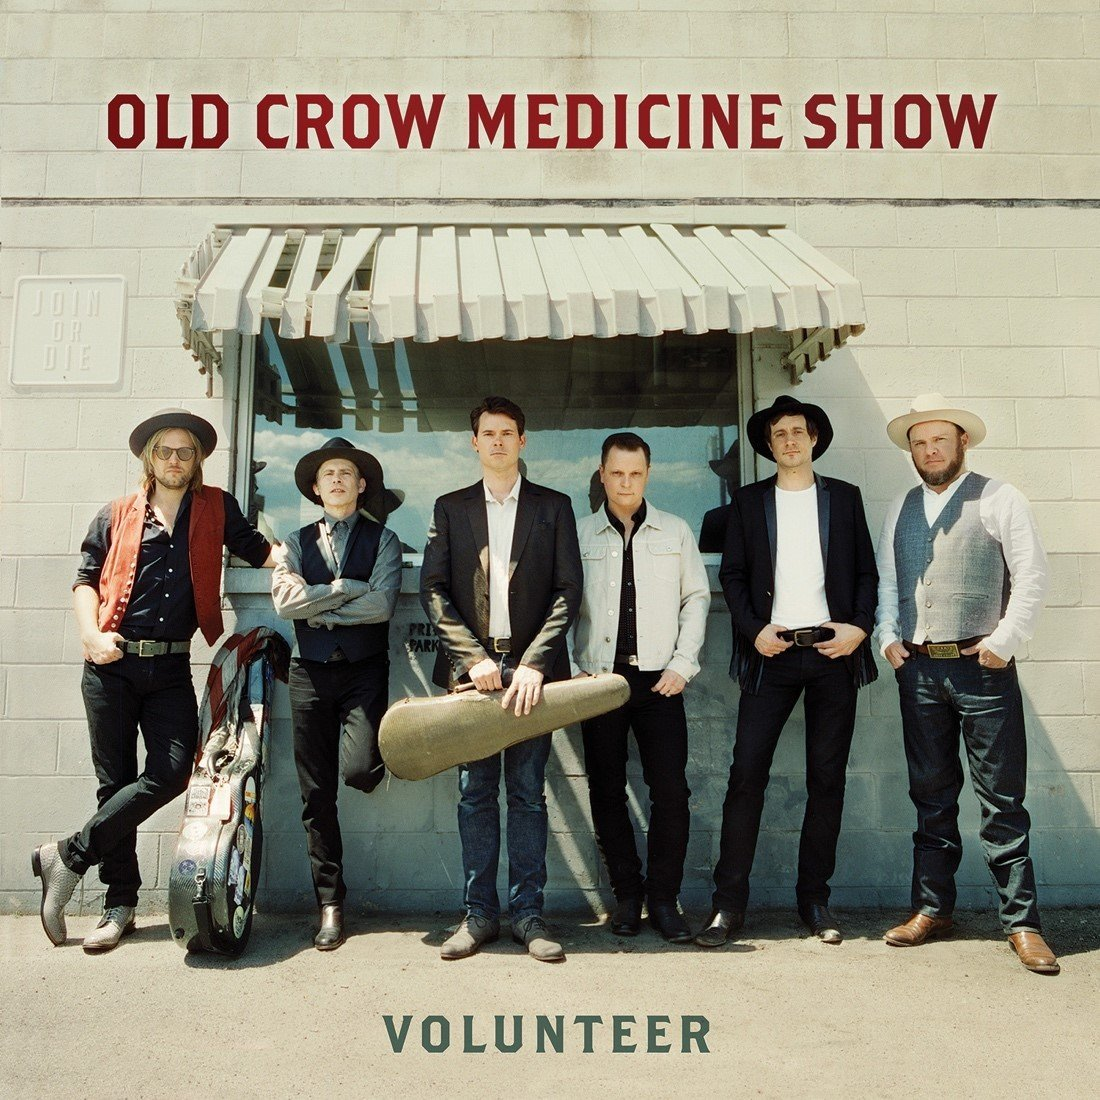 Old Crow Medicine Show Tour 2020.Concert Review Old Crow Medicine Show At The Anthem